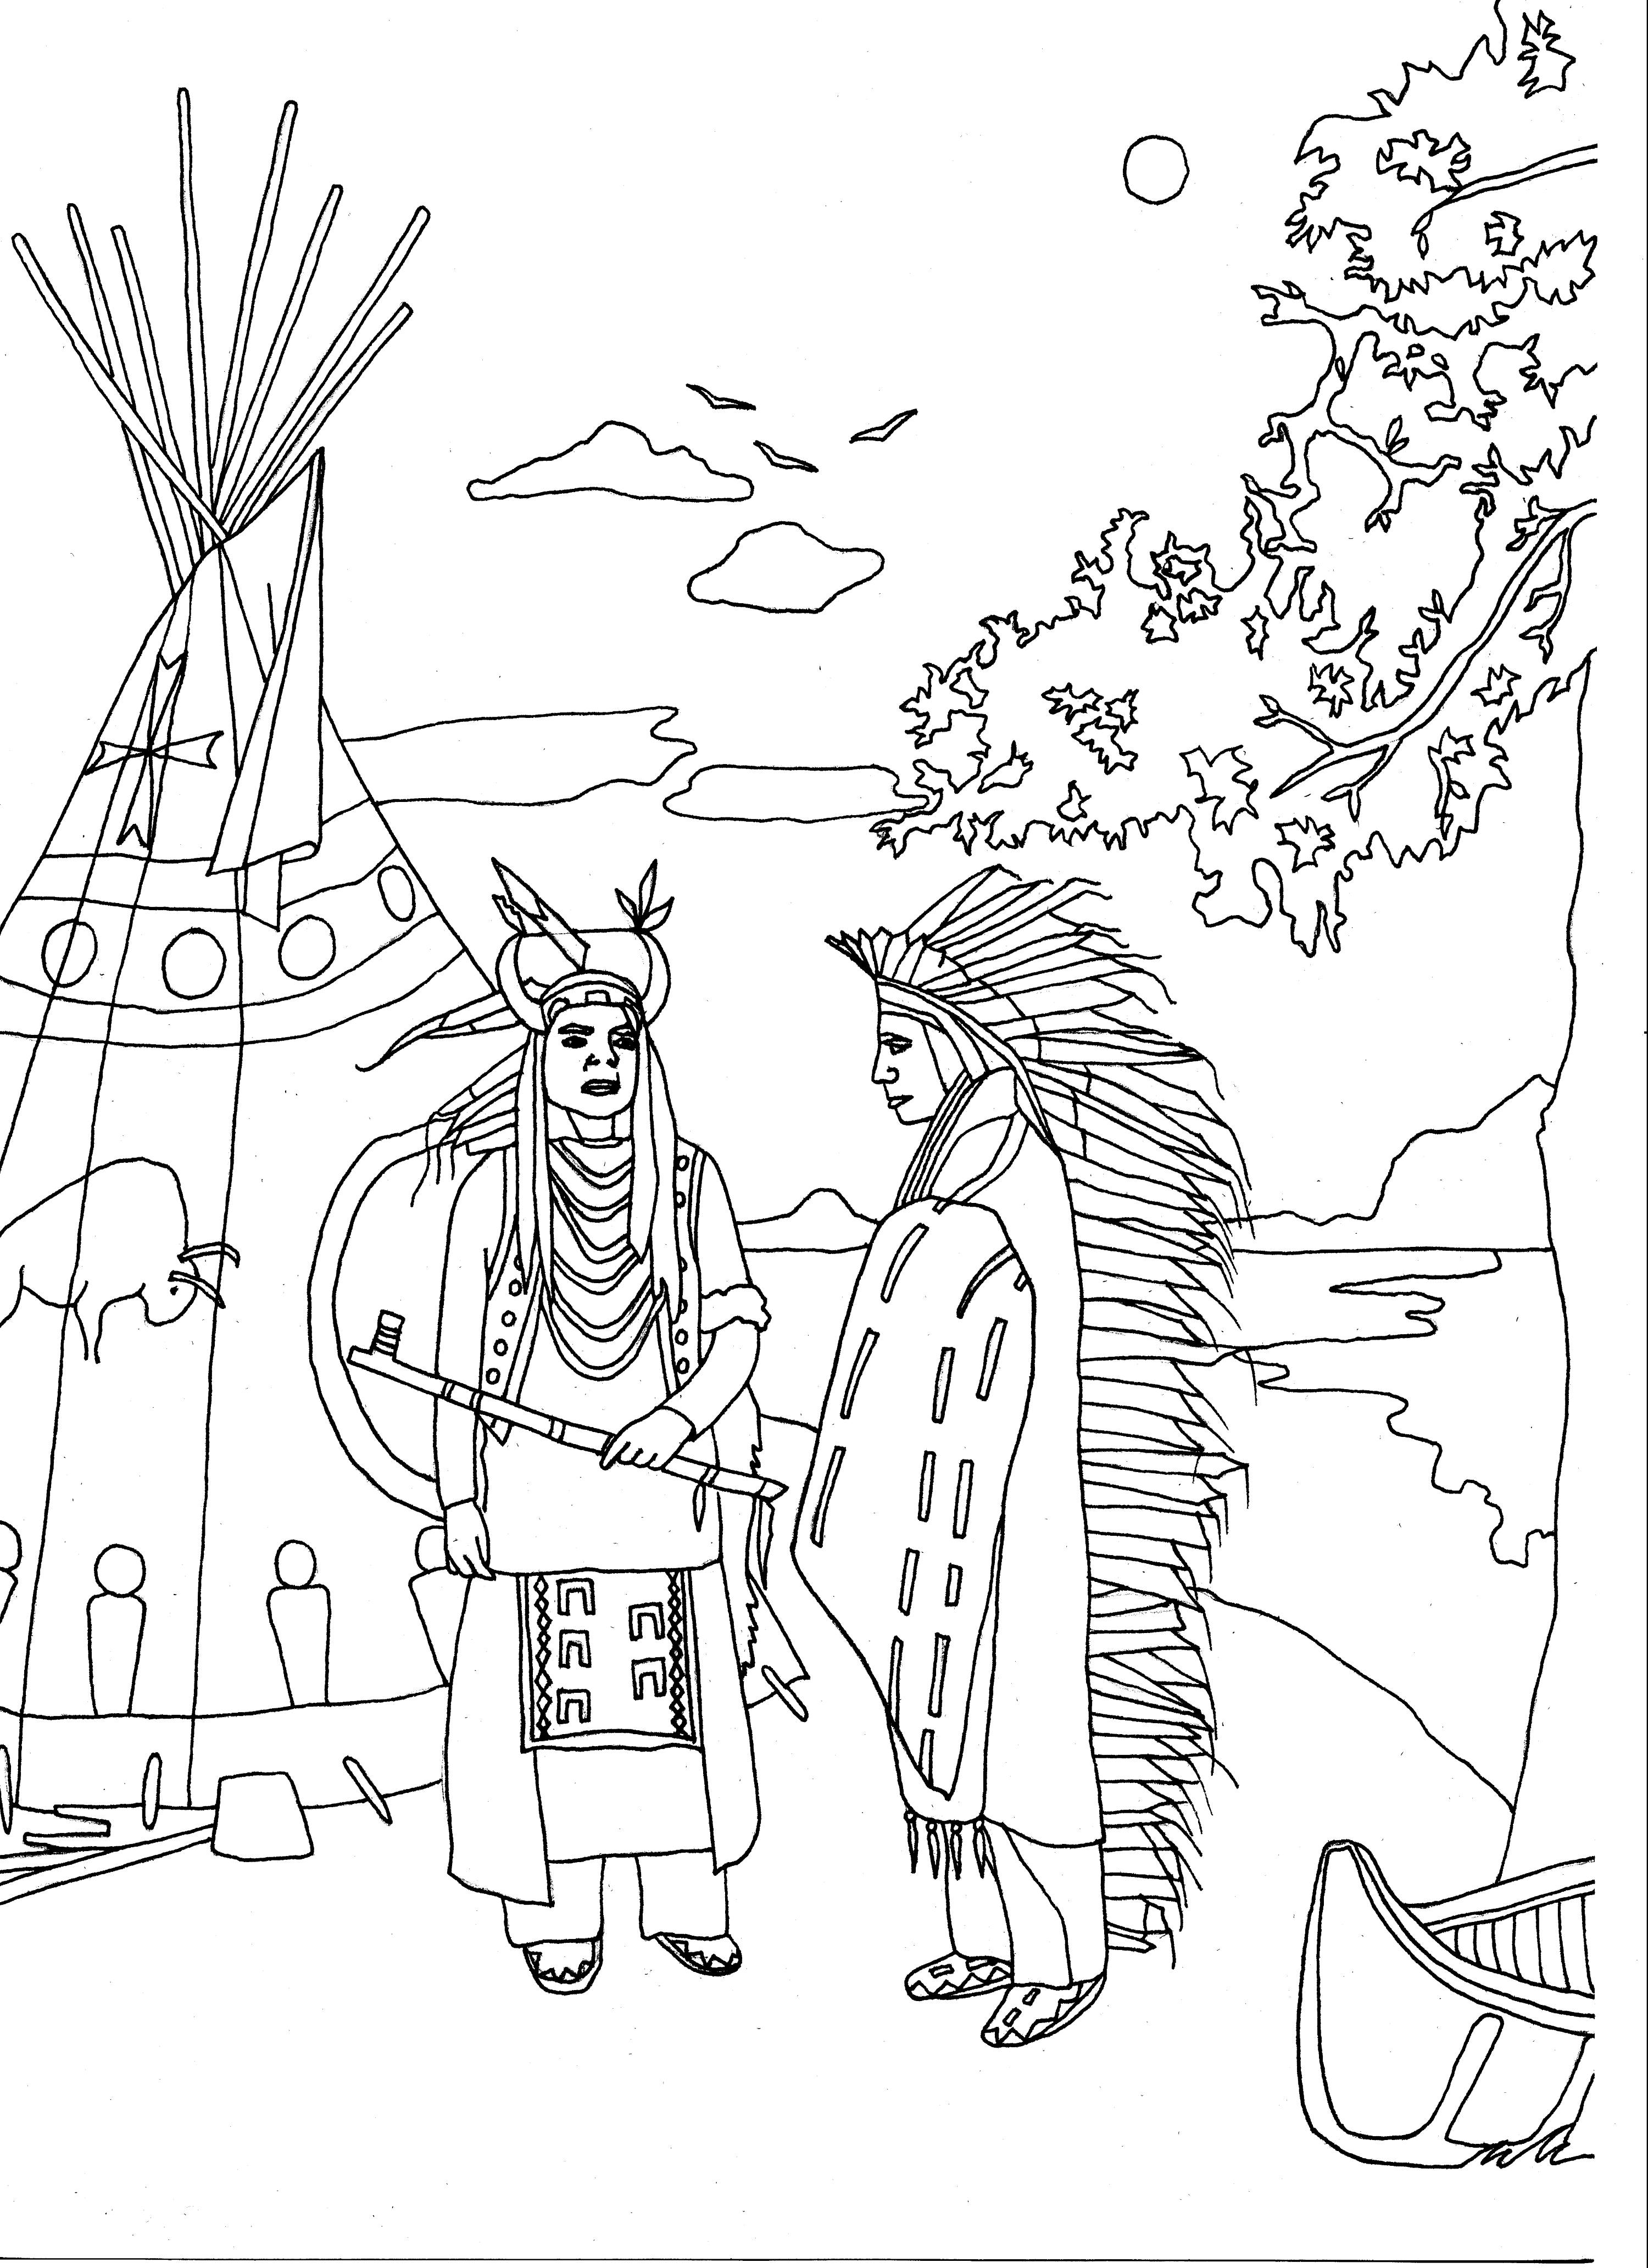 native american coloring sheets native american coloring pages to download and print for free coloring sheets american native 1 1